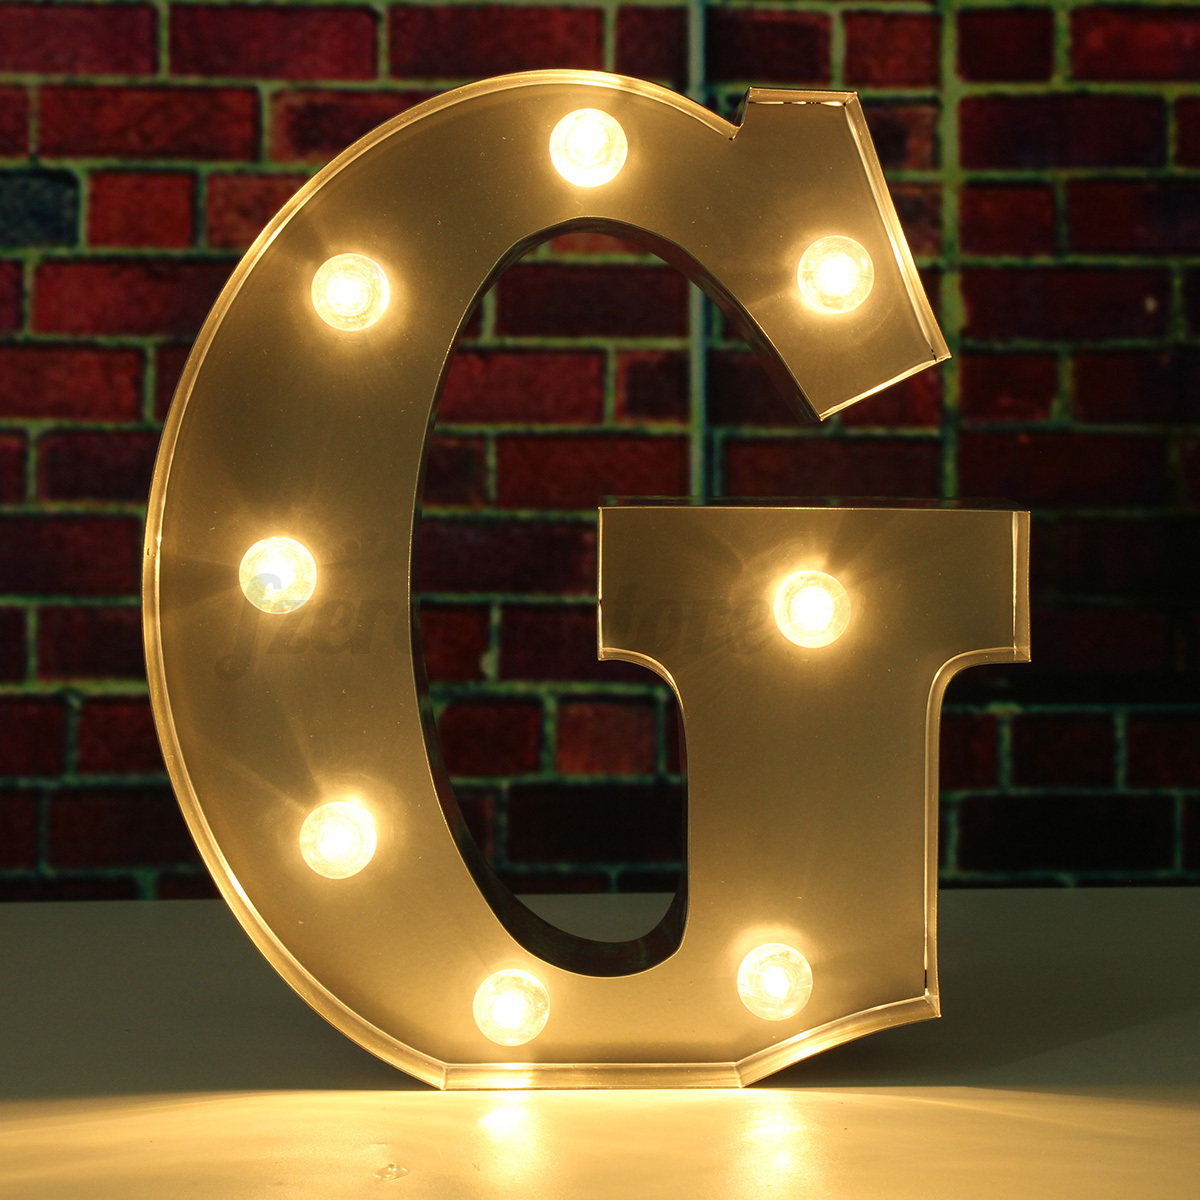 9 metal led marquee letter lights vintage circus style alphabet 9 039 039 metal led marquee letter lights biocorpaavc Image collections